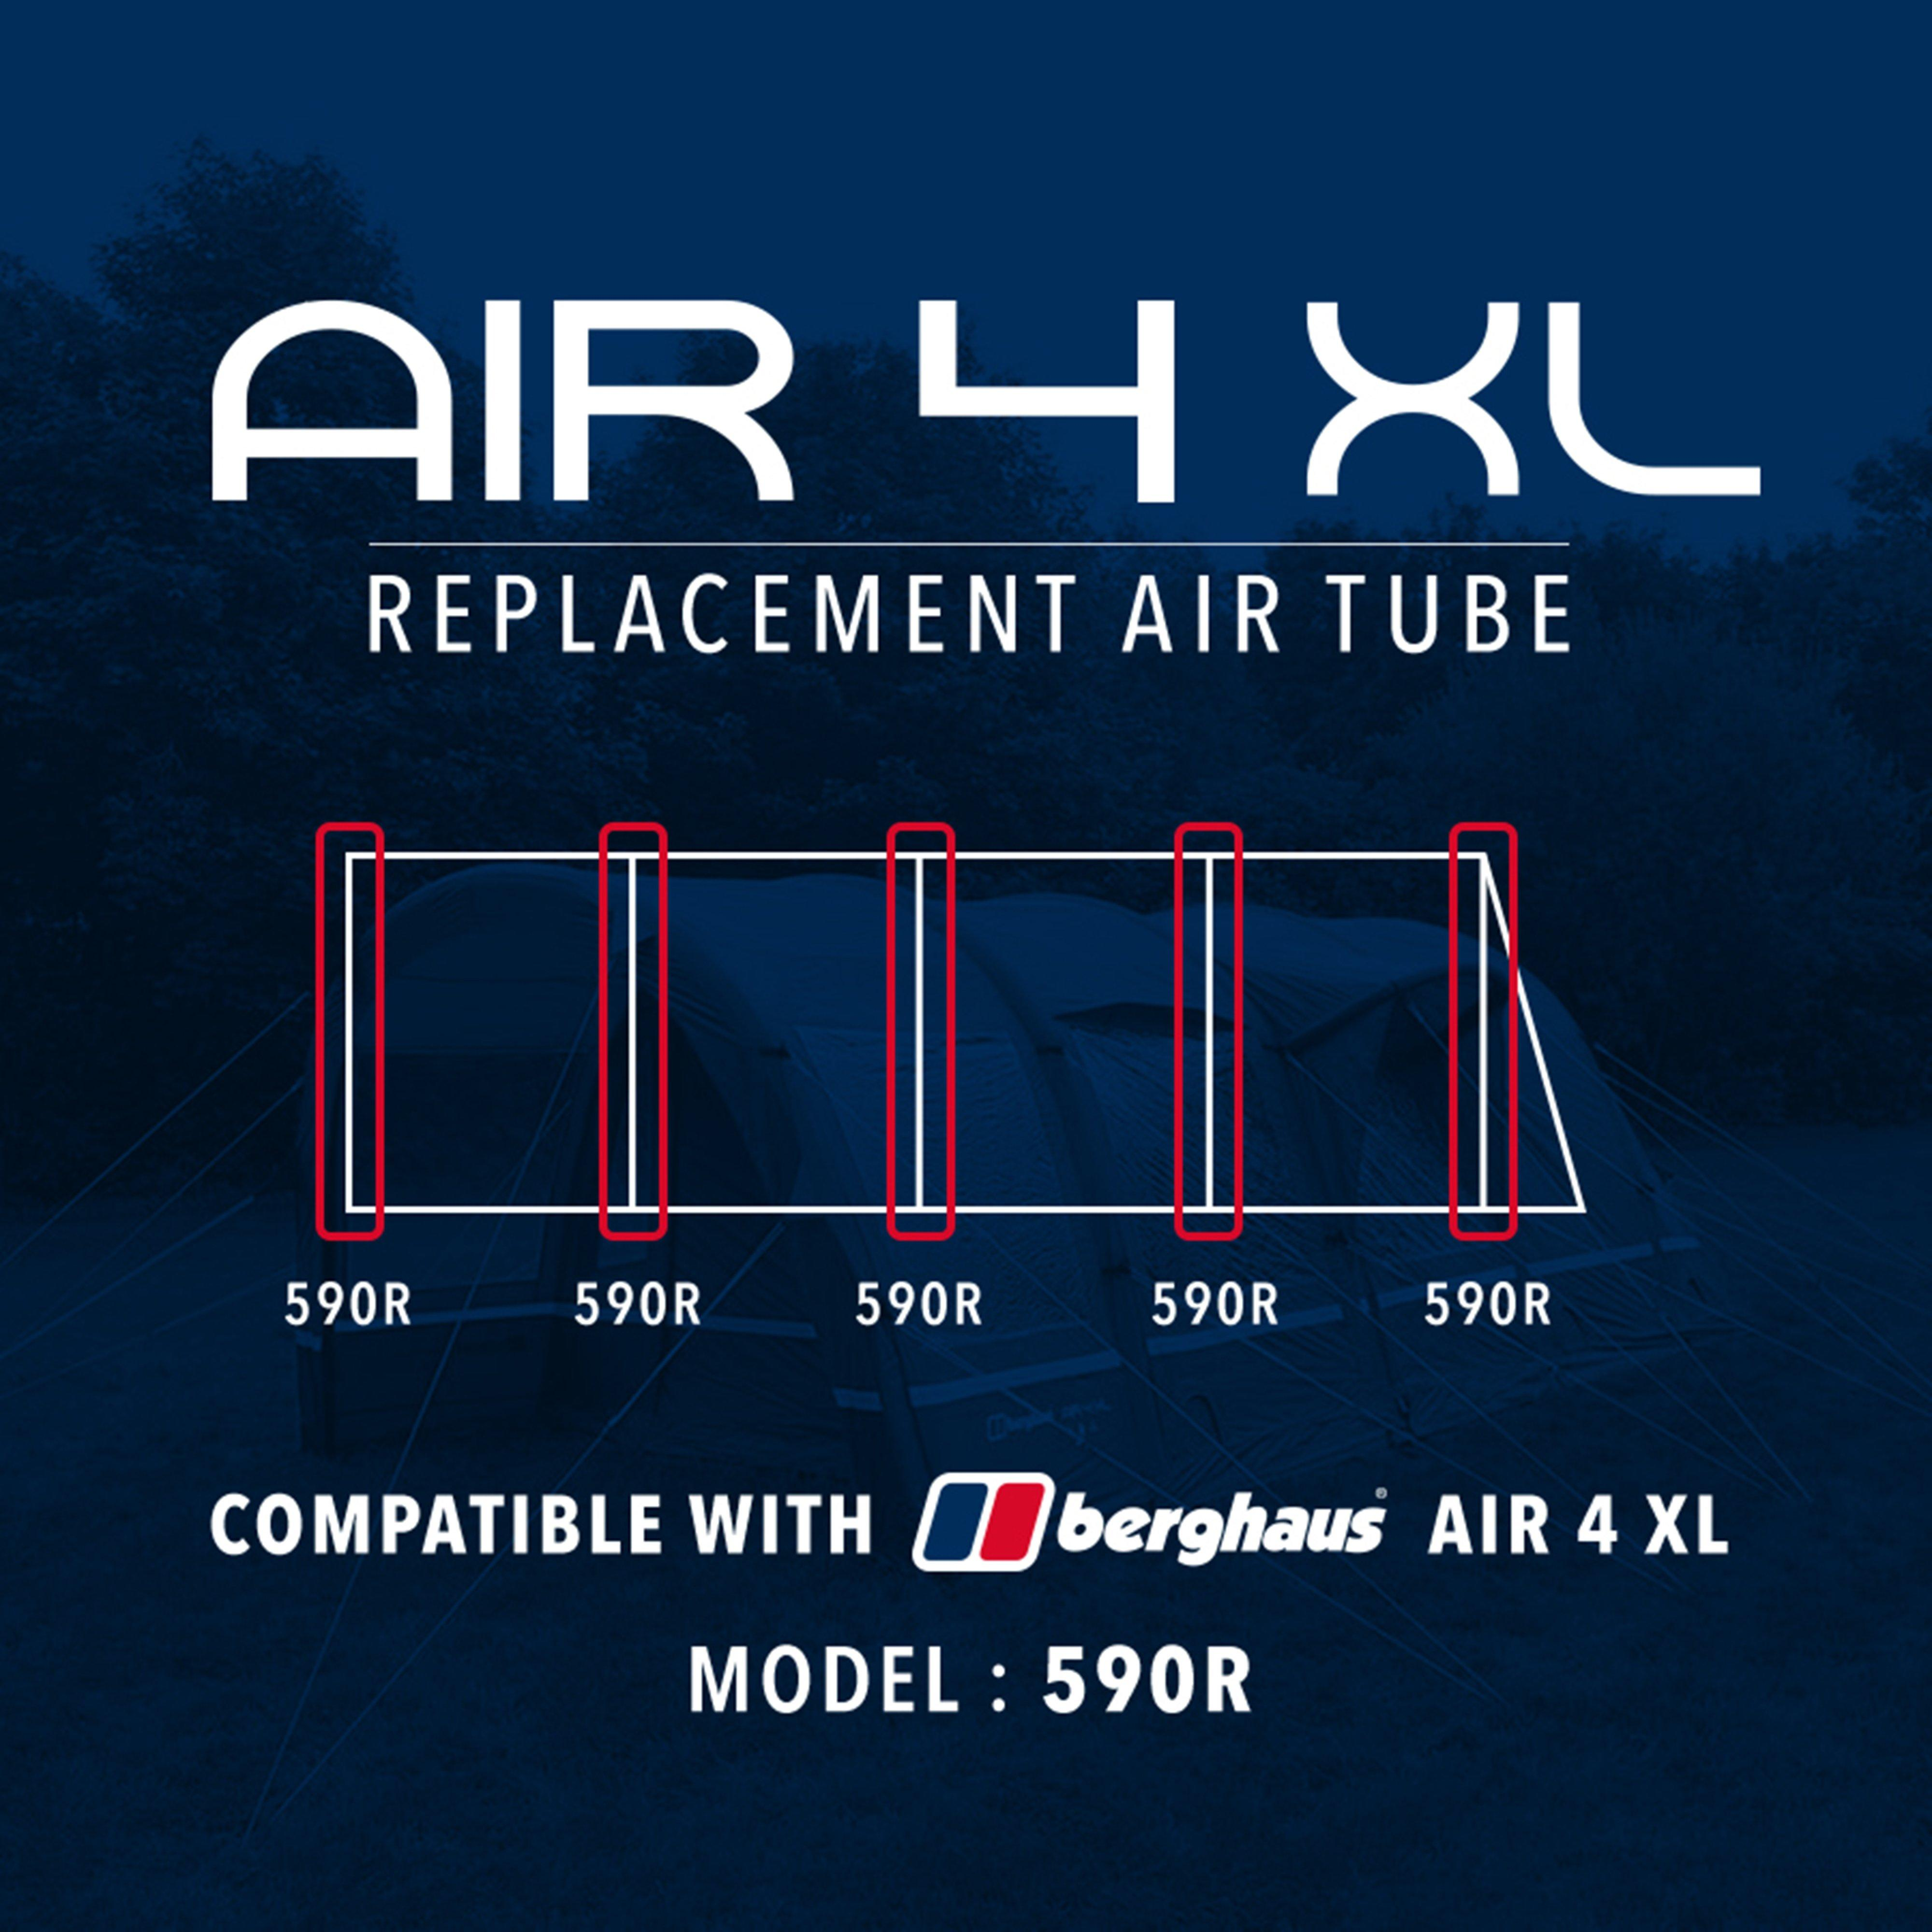 Berghaus Air 4 XL Replacement Air Tube